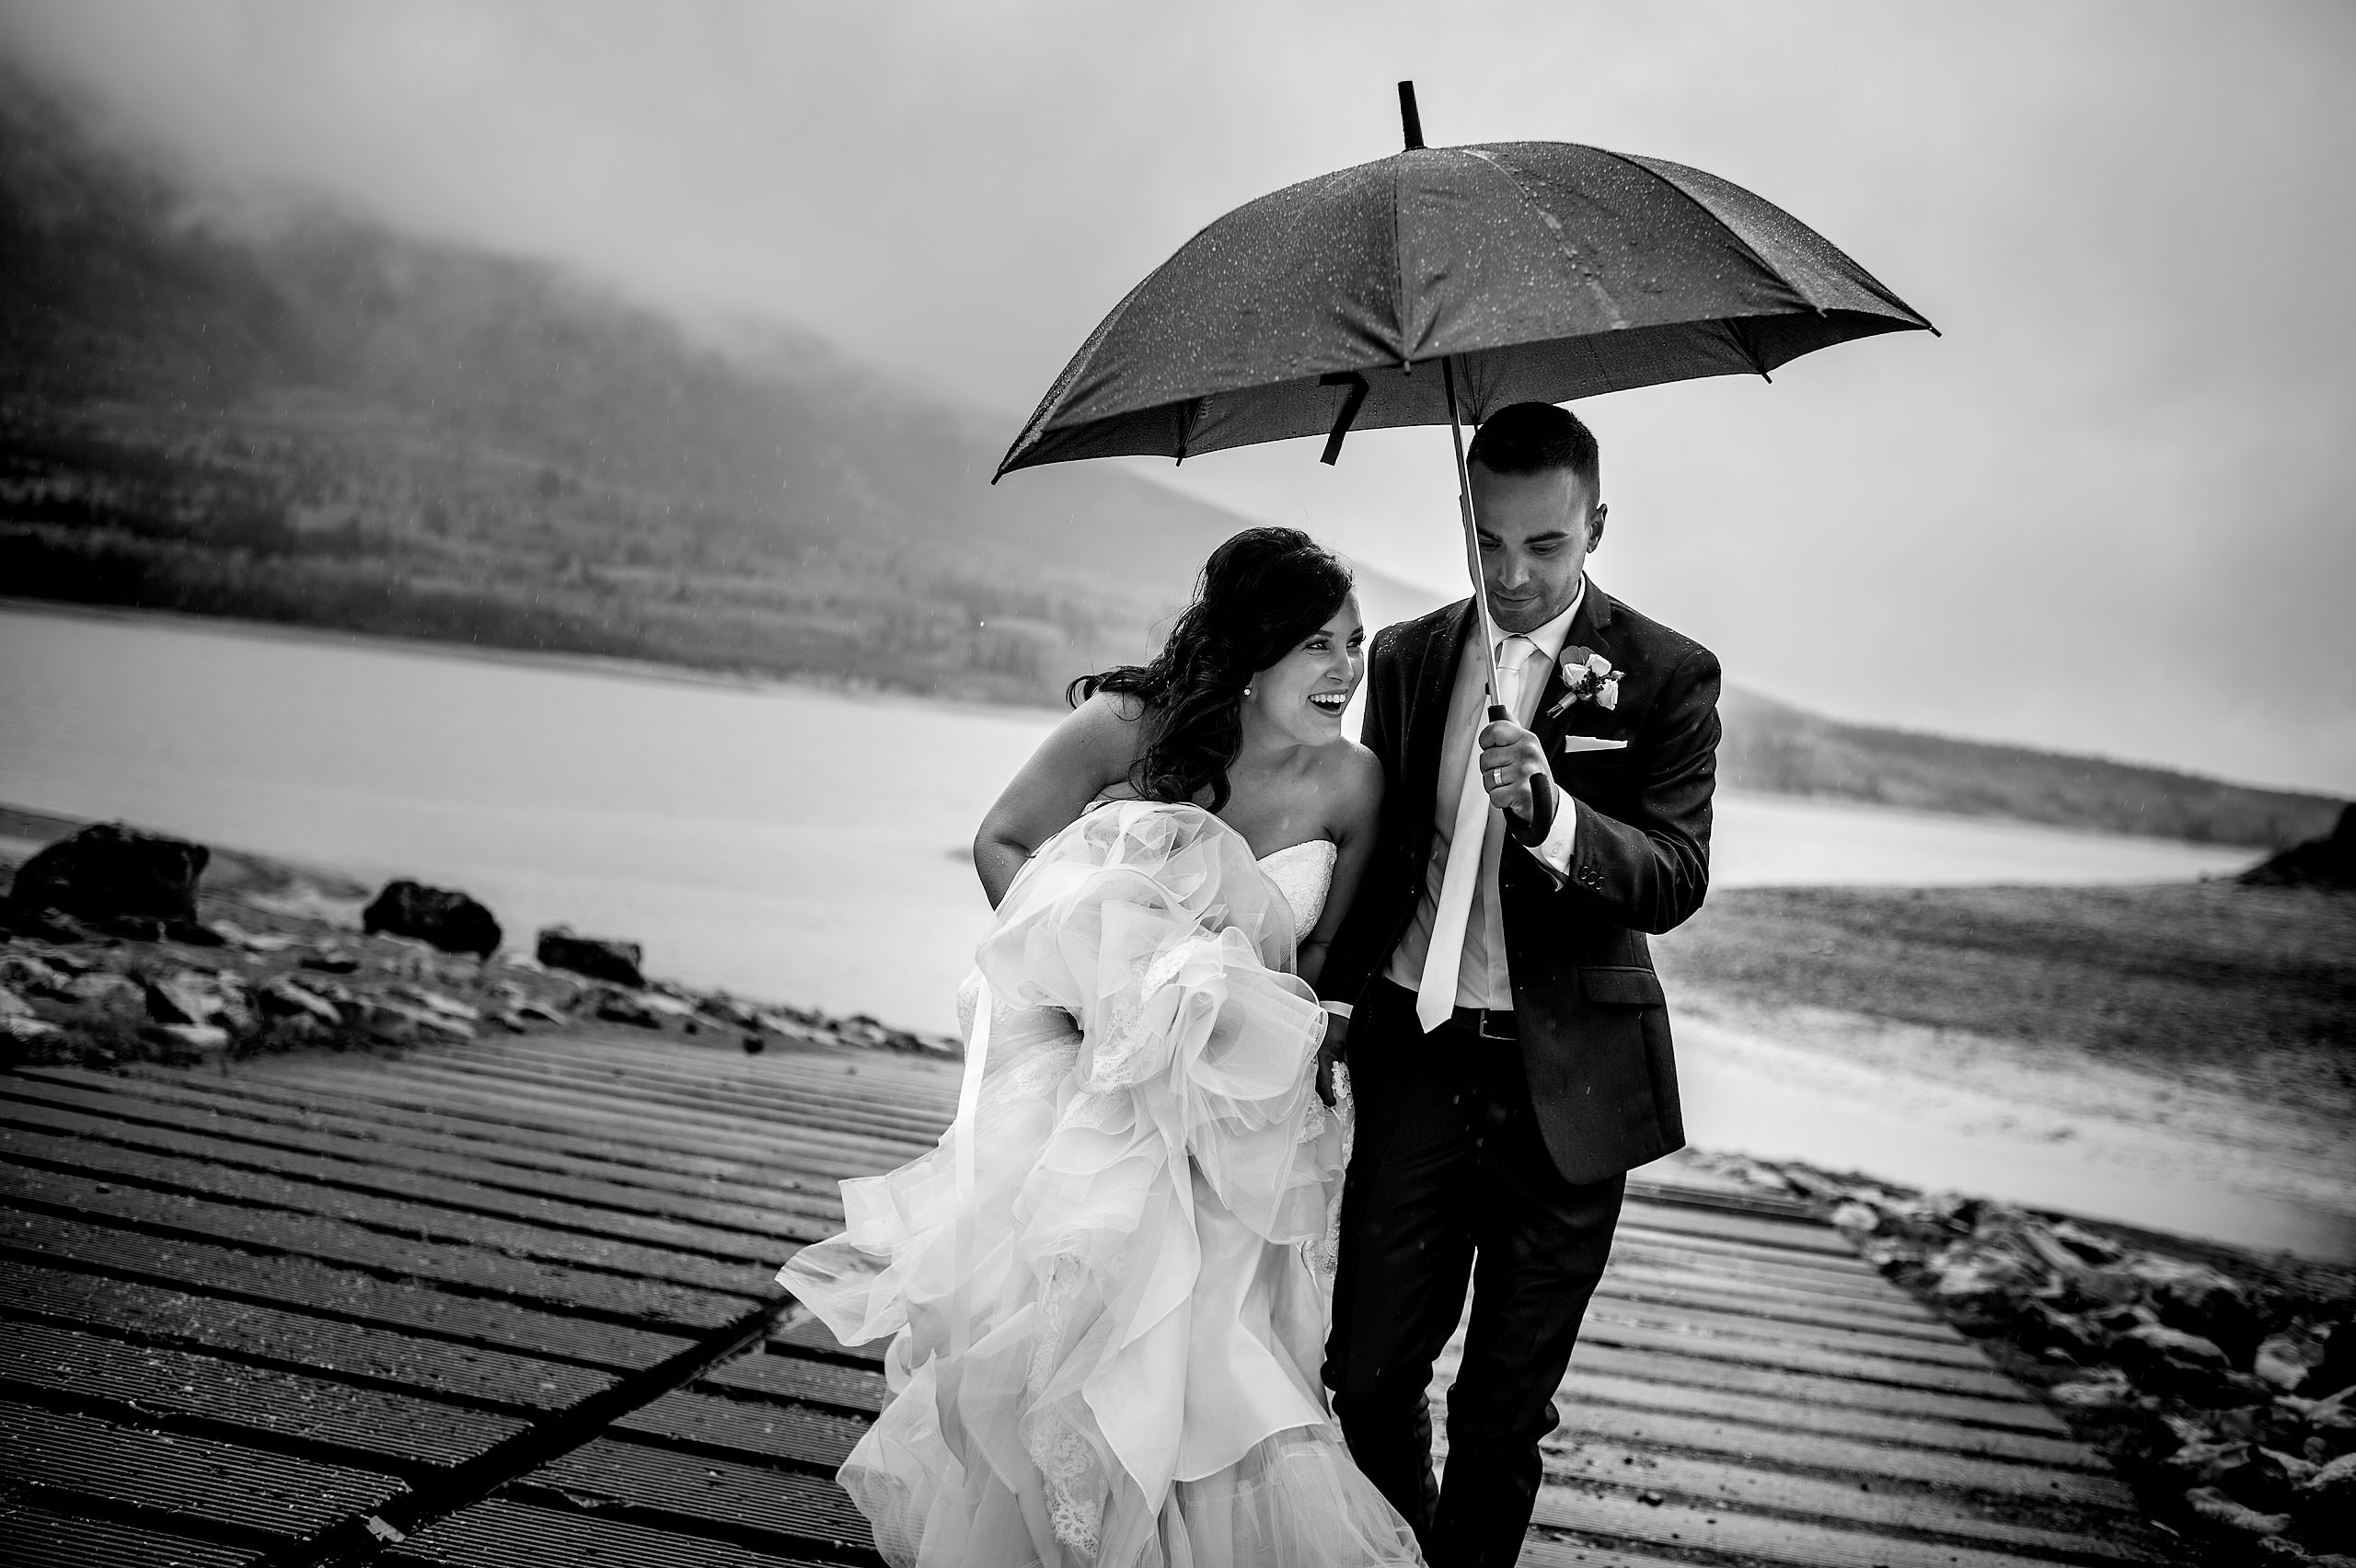 a bride and groom walking up a ramp during a rainstorm by calgary wedding photographers